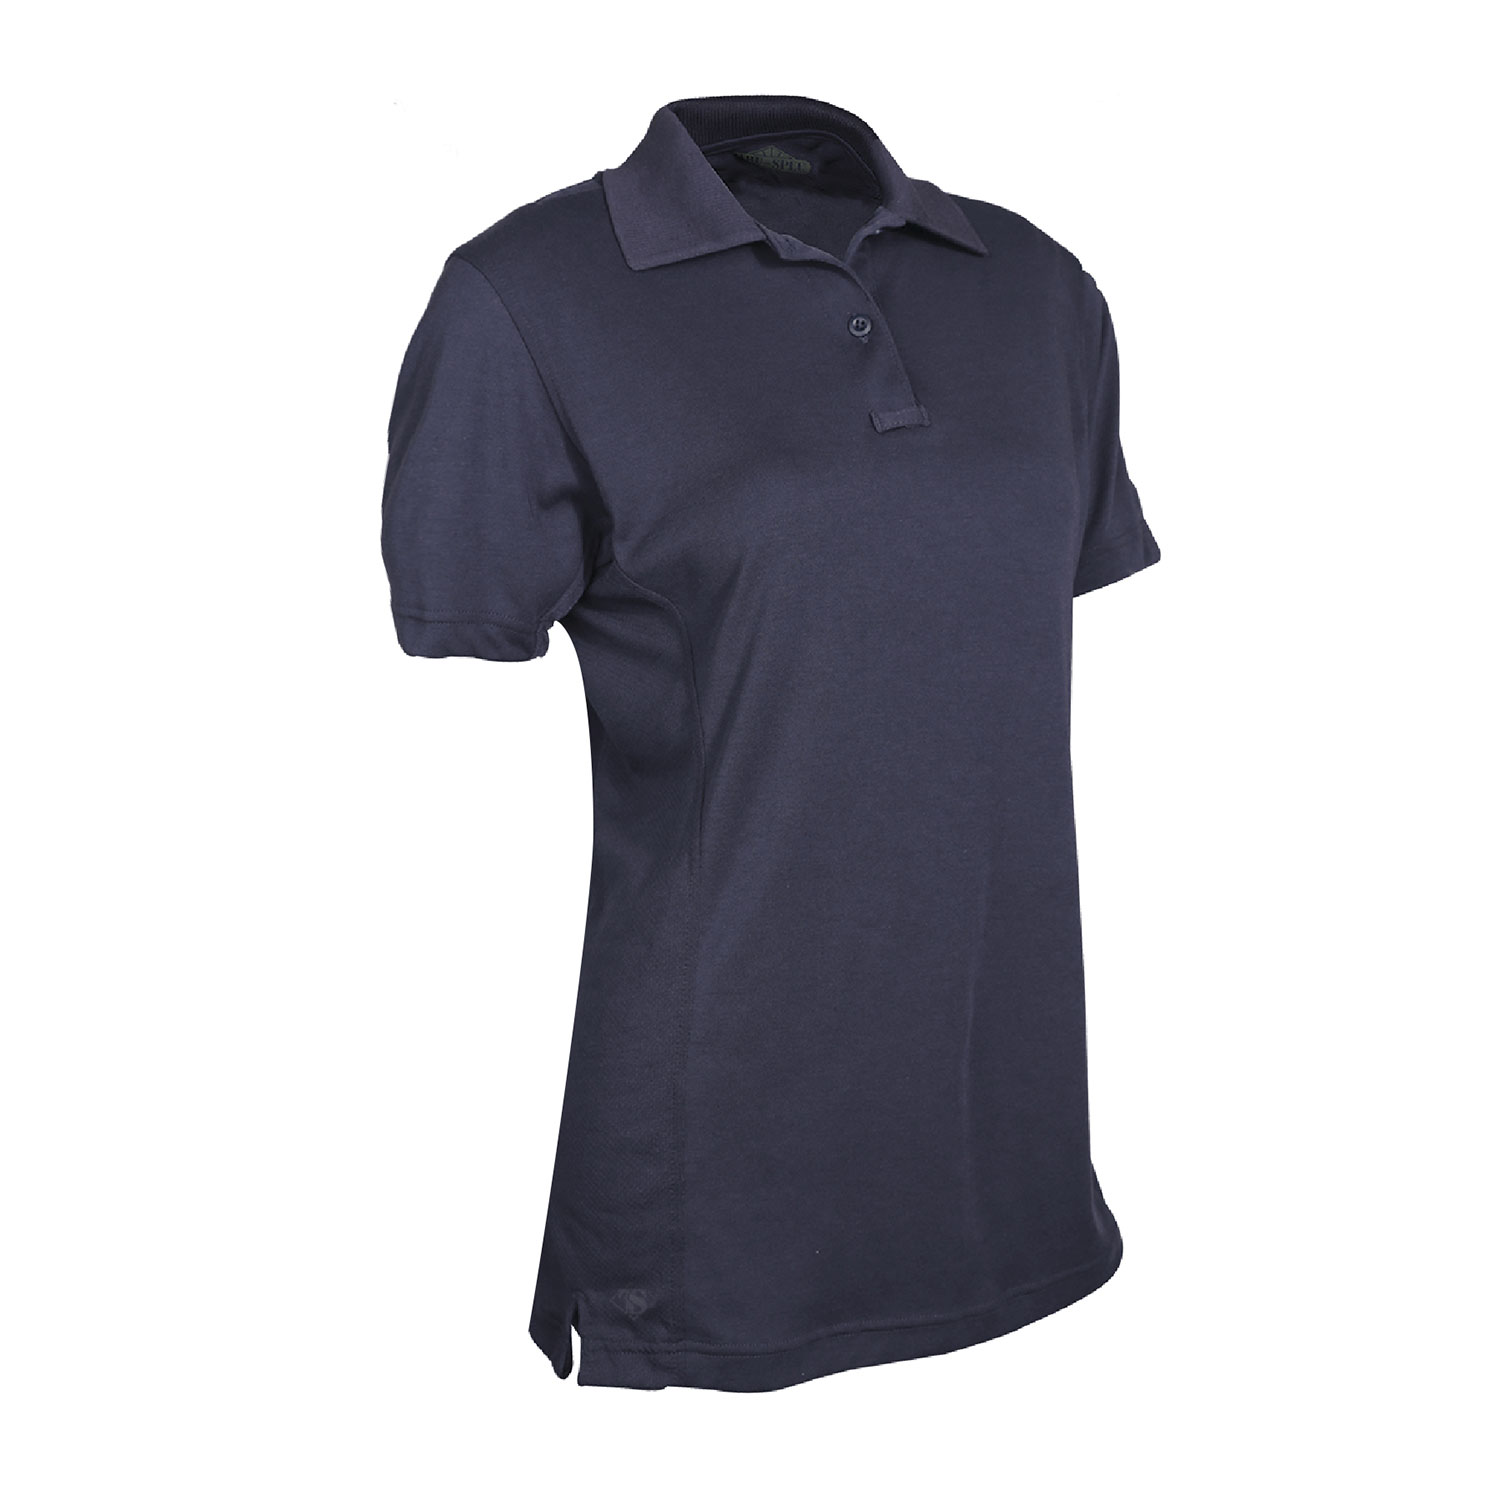 TRU-SPEC 24-7 Series Women's Drirelease Polo